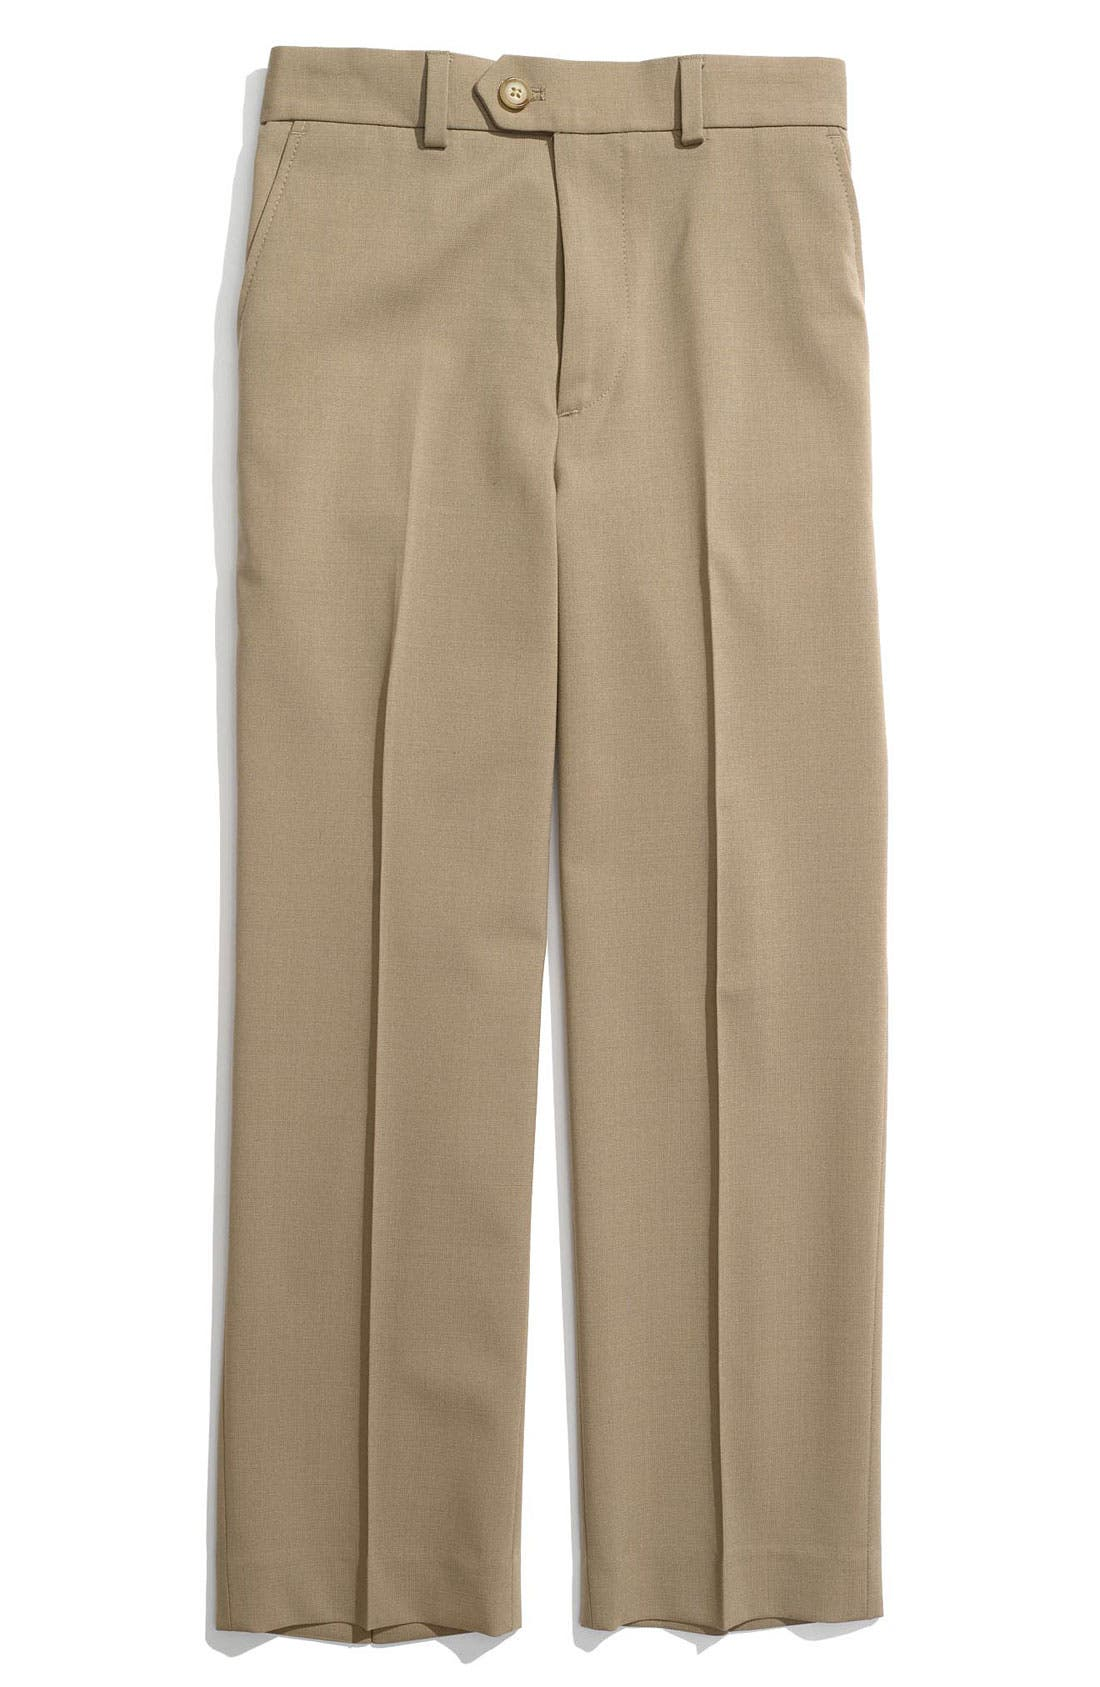 Alternate Image 1 Selected - Joseph Abboud Flat Front Dress Pants (Toddler)